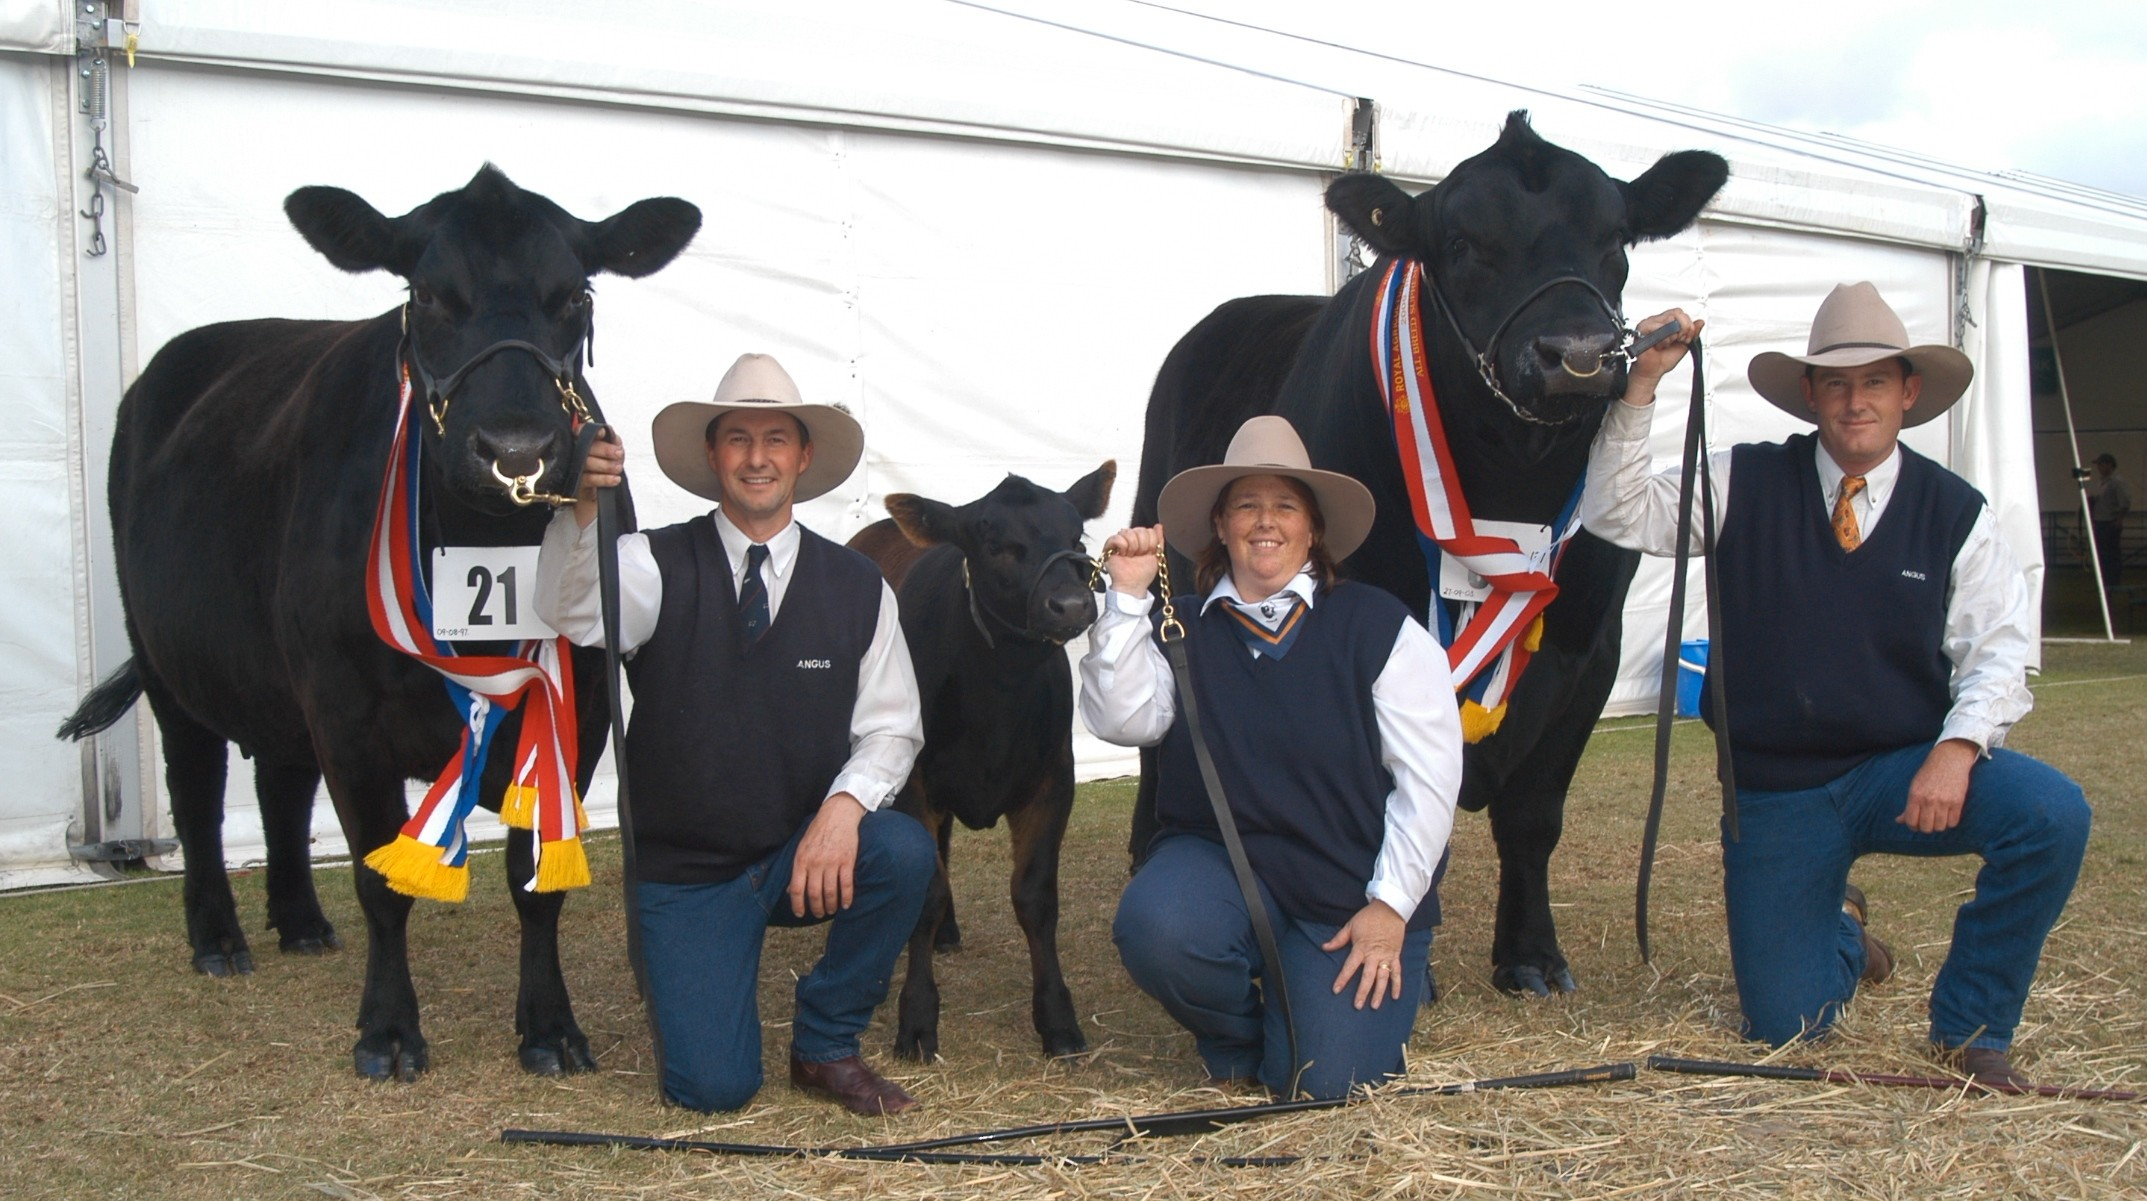 2006 All Breed Supreme Champion Pair, PJ Dream S2 exhibited by P & J McLauchlan and Rossander Tonga Y331, exhibited by Rossander Angus